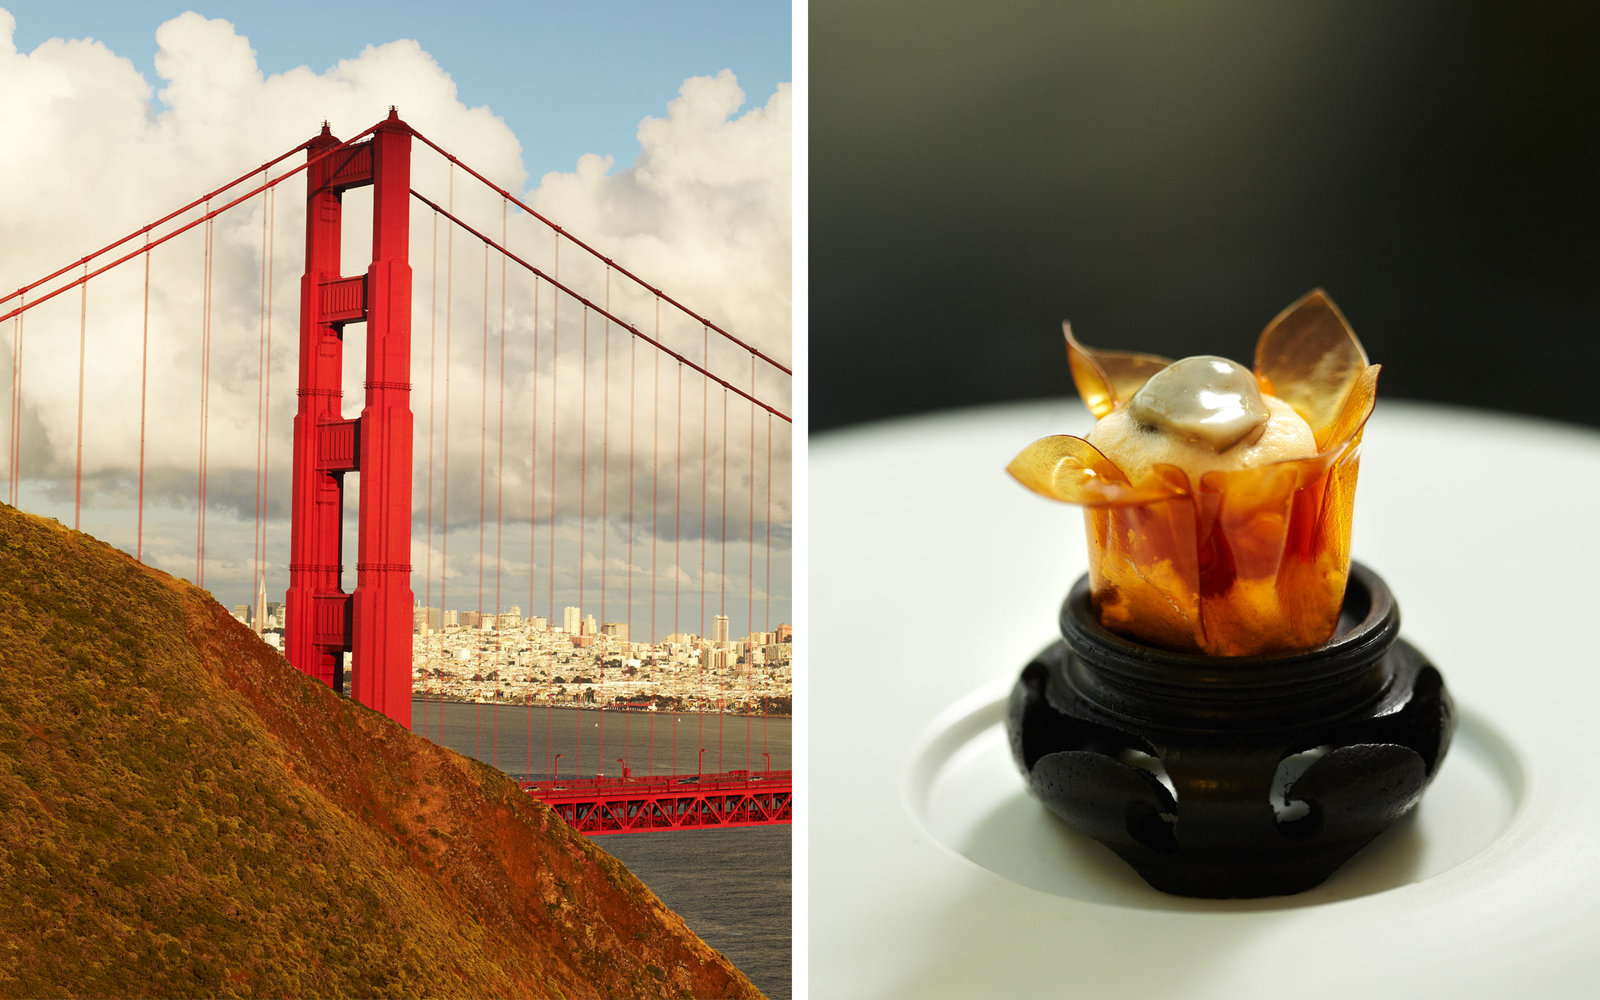 Best U.S Cities for Food